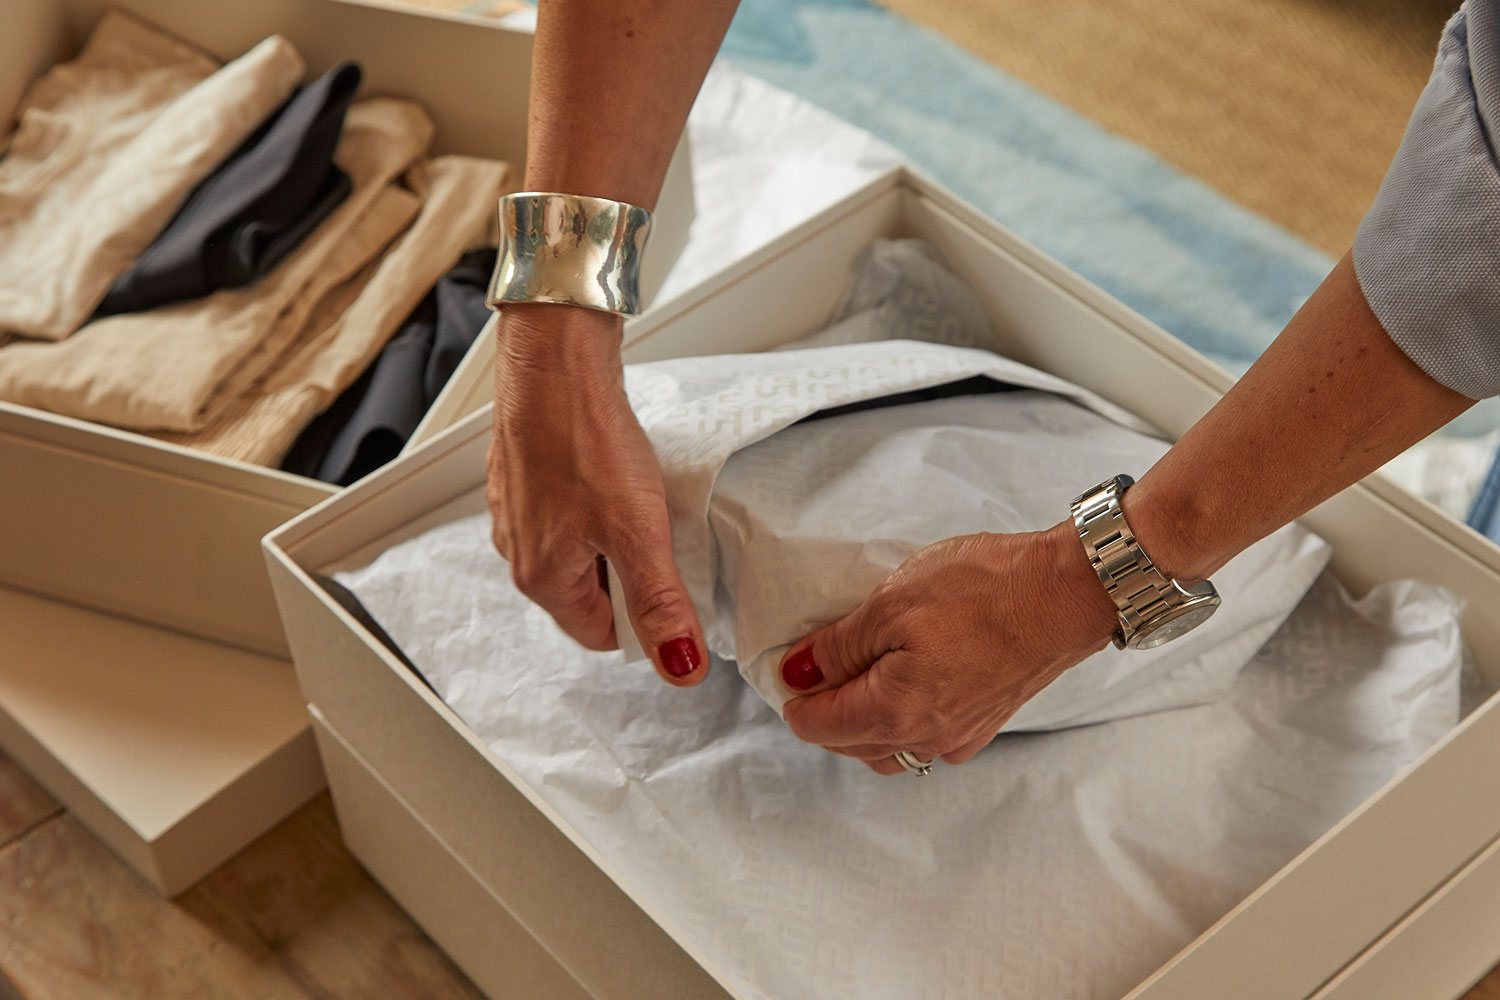 Vip Gifting Packaging Production Manufacture Halle Berry Sweaty Betty Handmade Launch A List Celebrity Tyvek Colorplan G F Smith Luxury Box Custom Bag Limited Edition Progress 23